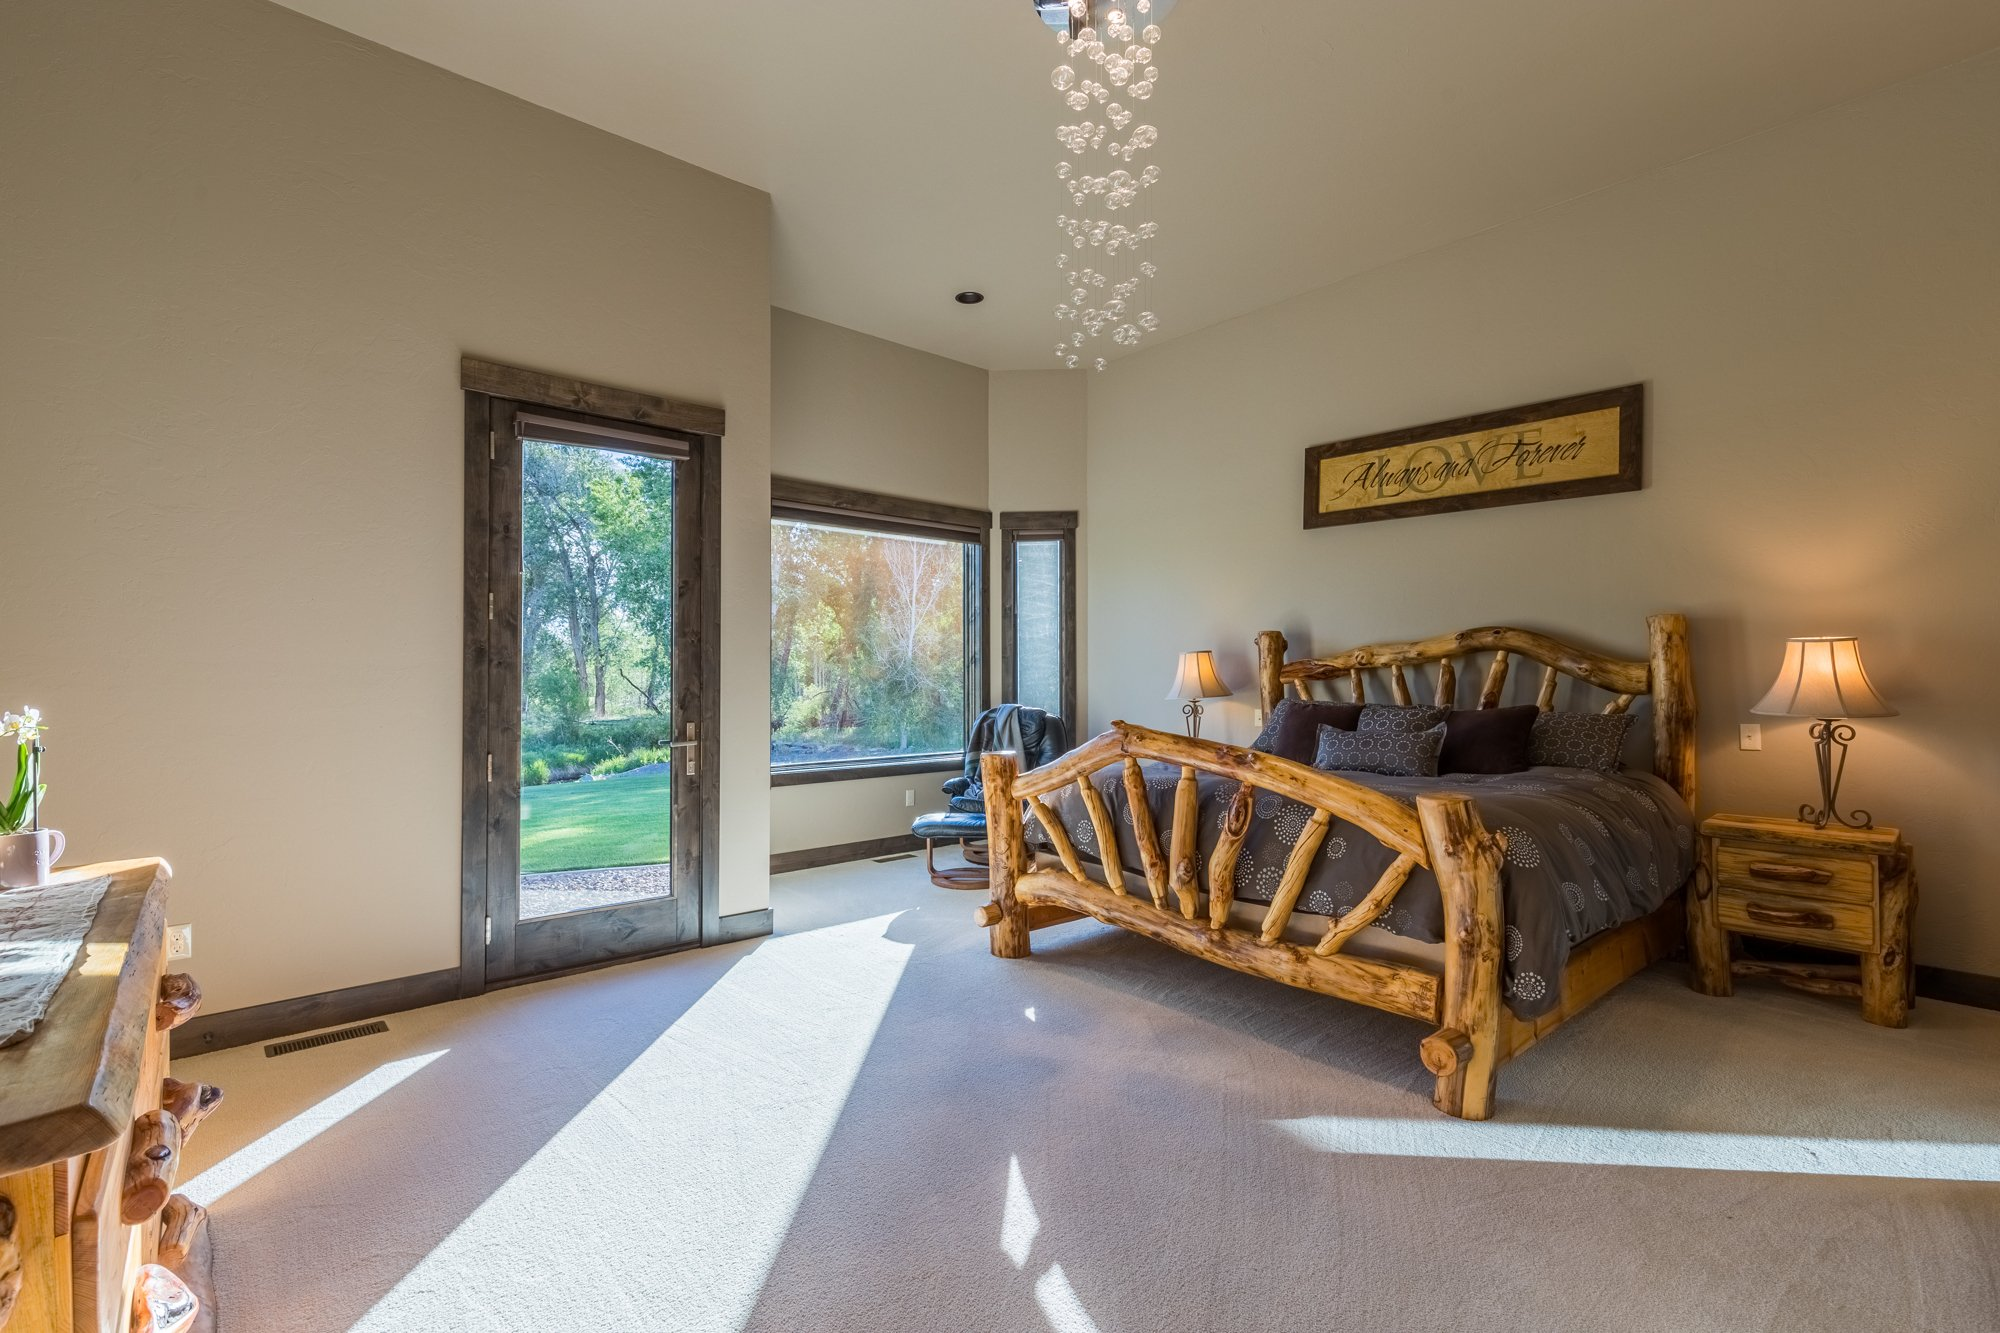 Bedroom with Patio Access - 15067 6140 Ln Montrose, CO 81403 - Atha Team Luxury Real Estate